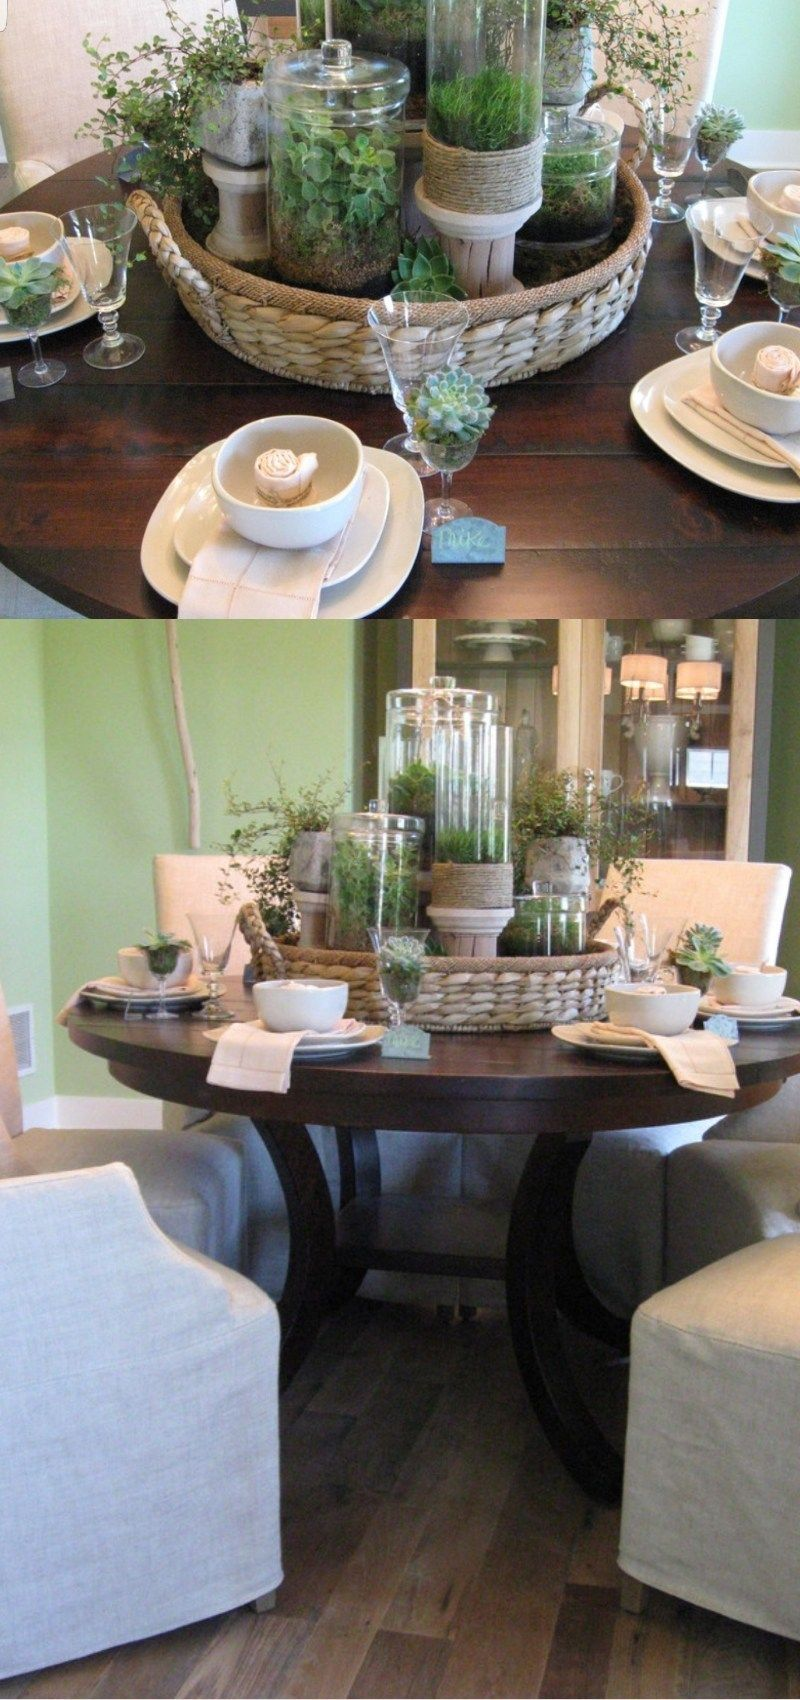 Simple Table Setting Ideas Dining Table Centerpiece Dining Table Decor Modern Dining Table Decor